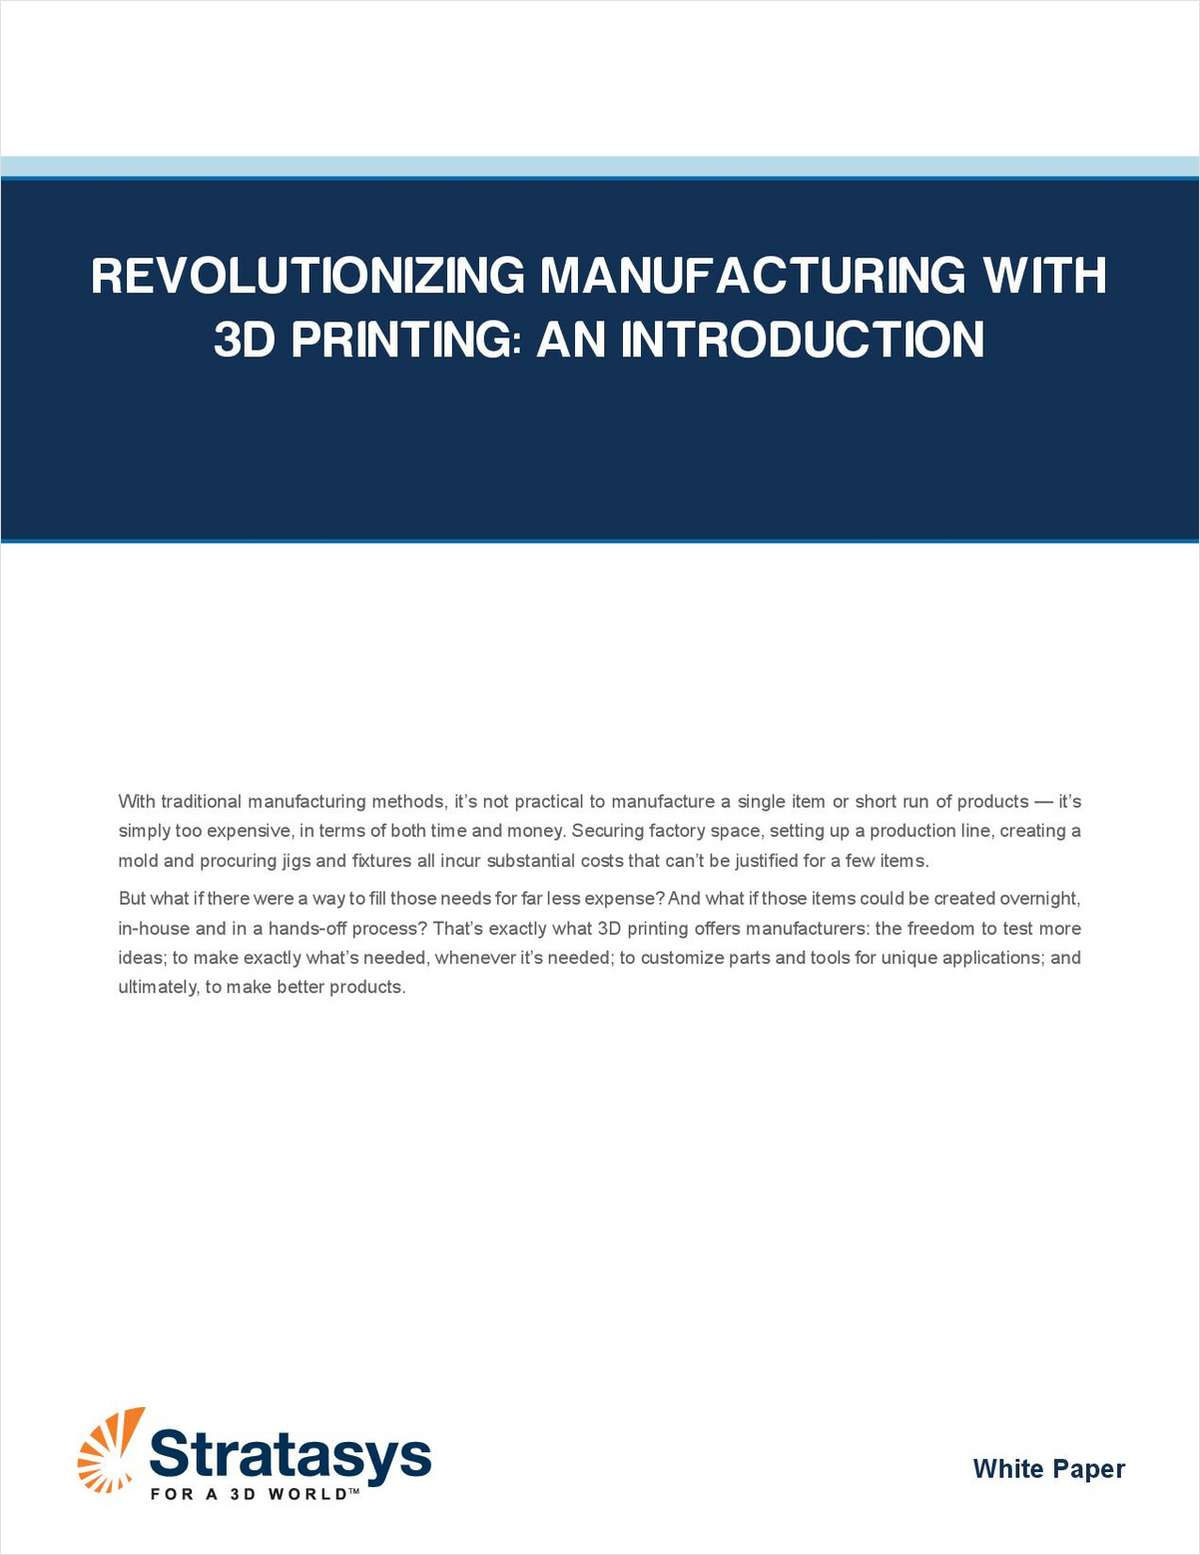 Revolutionizing Manufacturing with 3D Printing: An Introduction